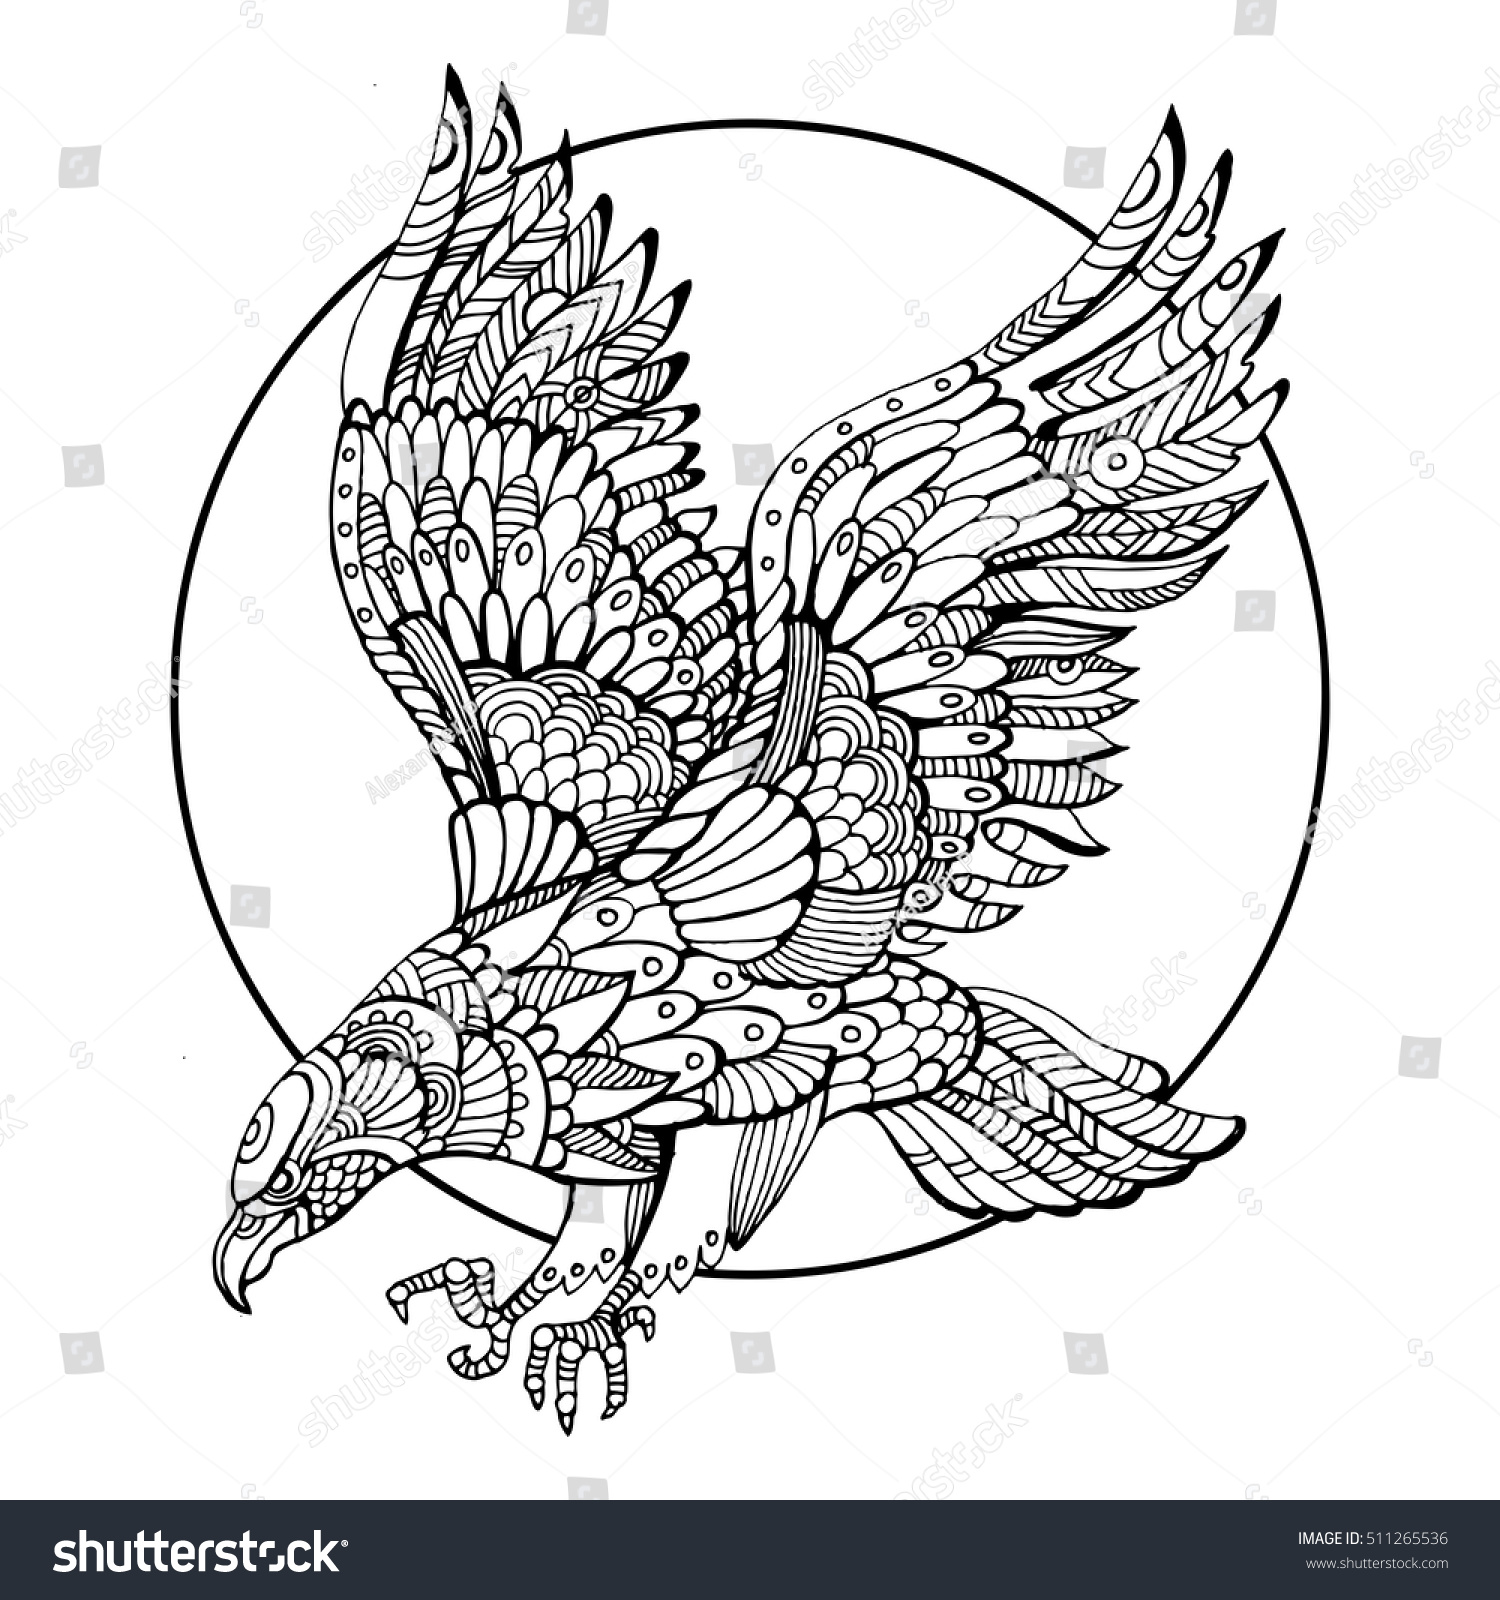 Stress relief coloring books disney - Ad Adult Disney Coloring Books Eagle Bird Coloring Book Adults Vector Stock Vector 511265536